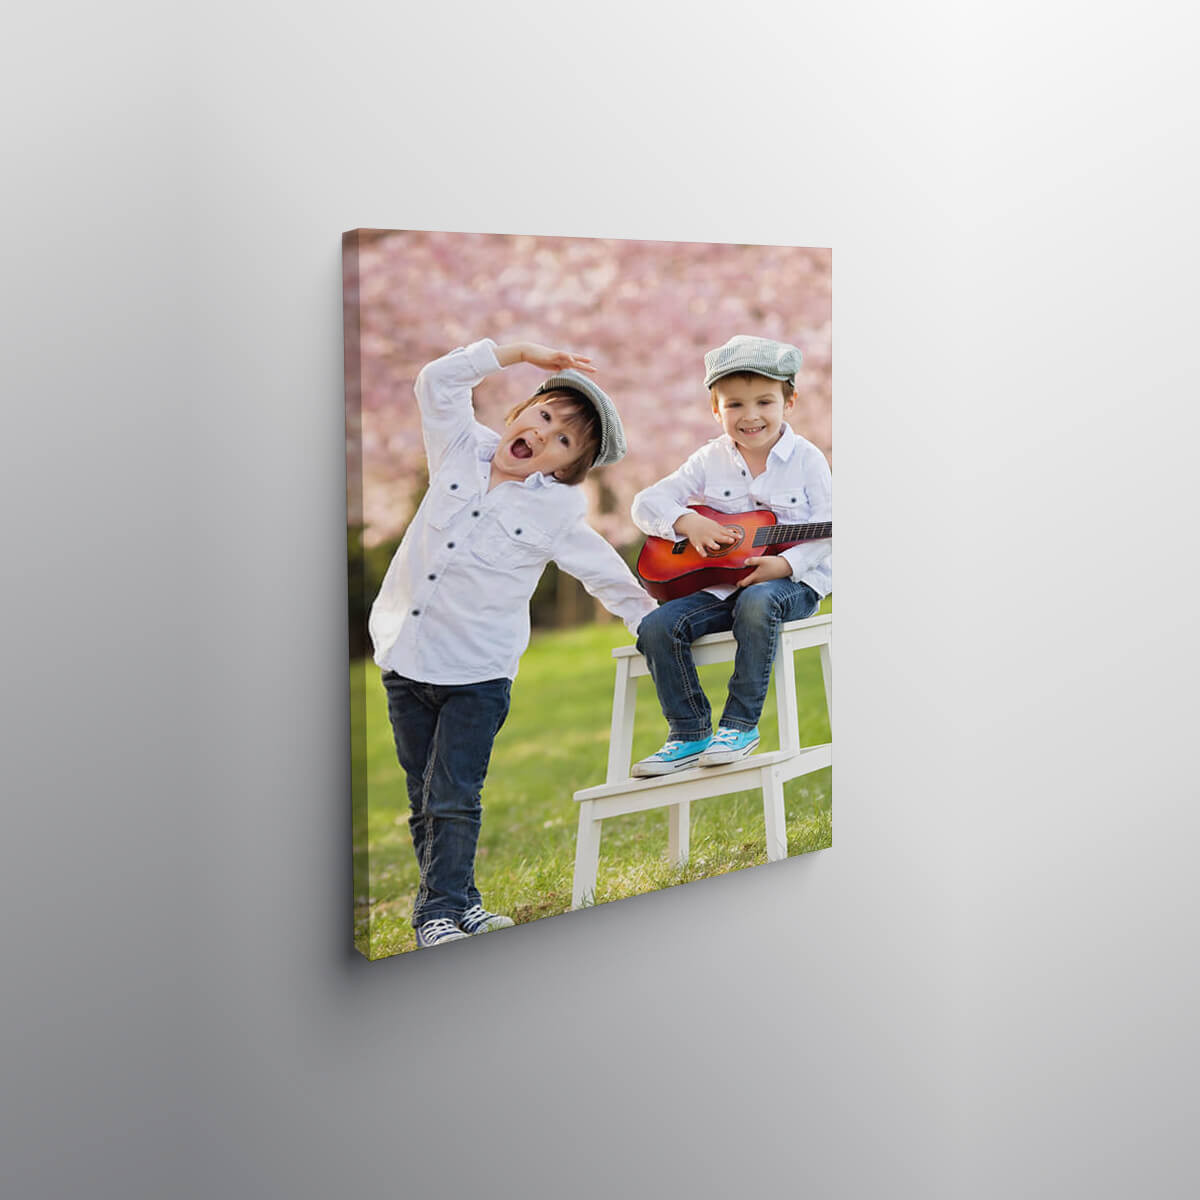 "personalised 12x8"" Canvas"